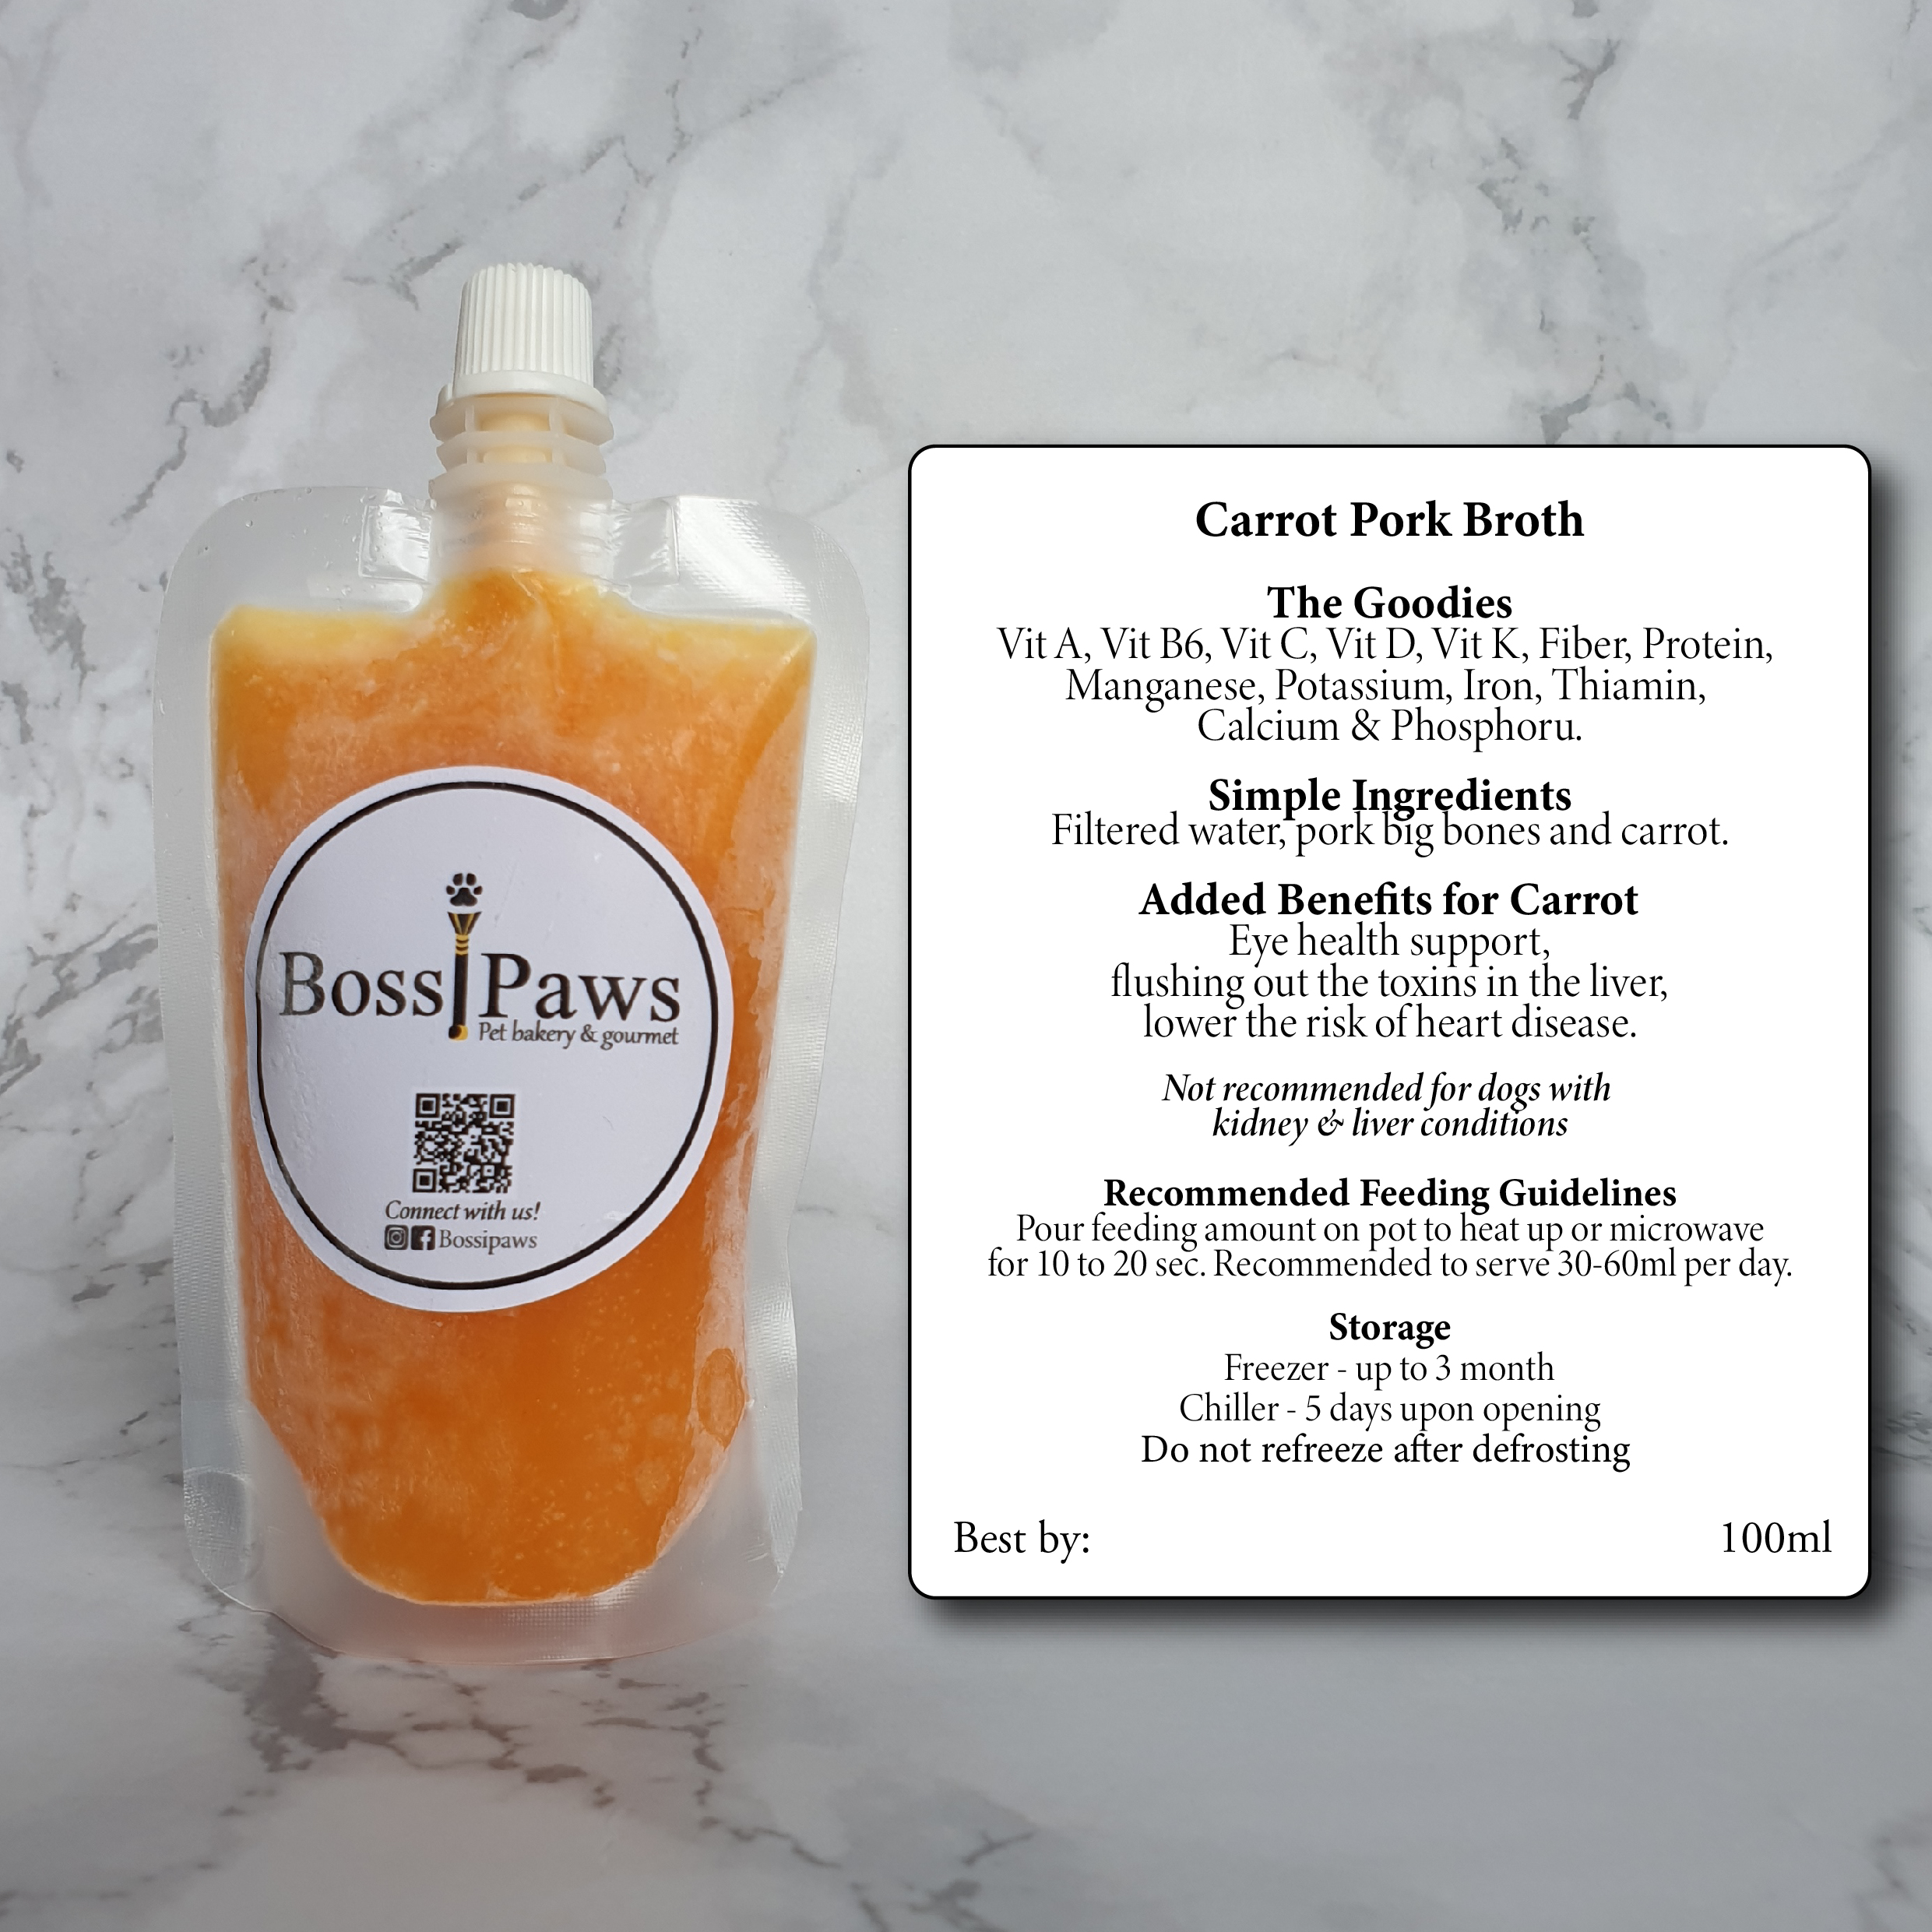 BossiPaws - Carrot & Pork Bone Broth 01.jpg